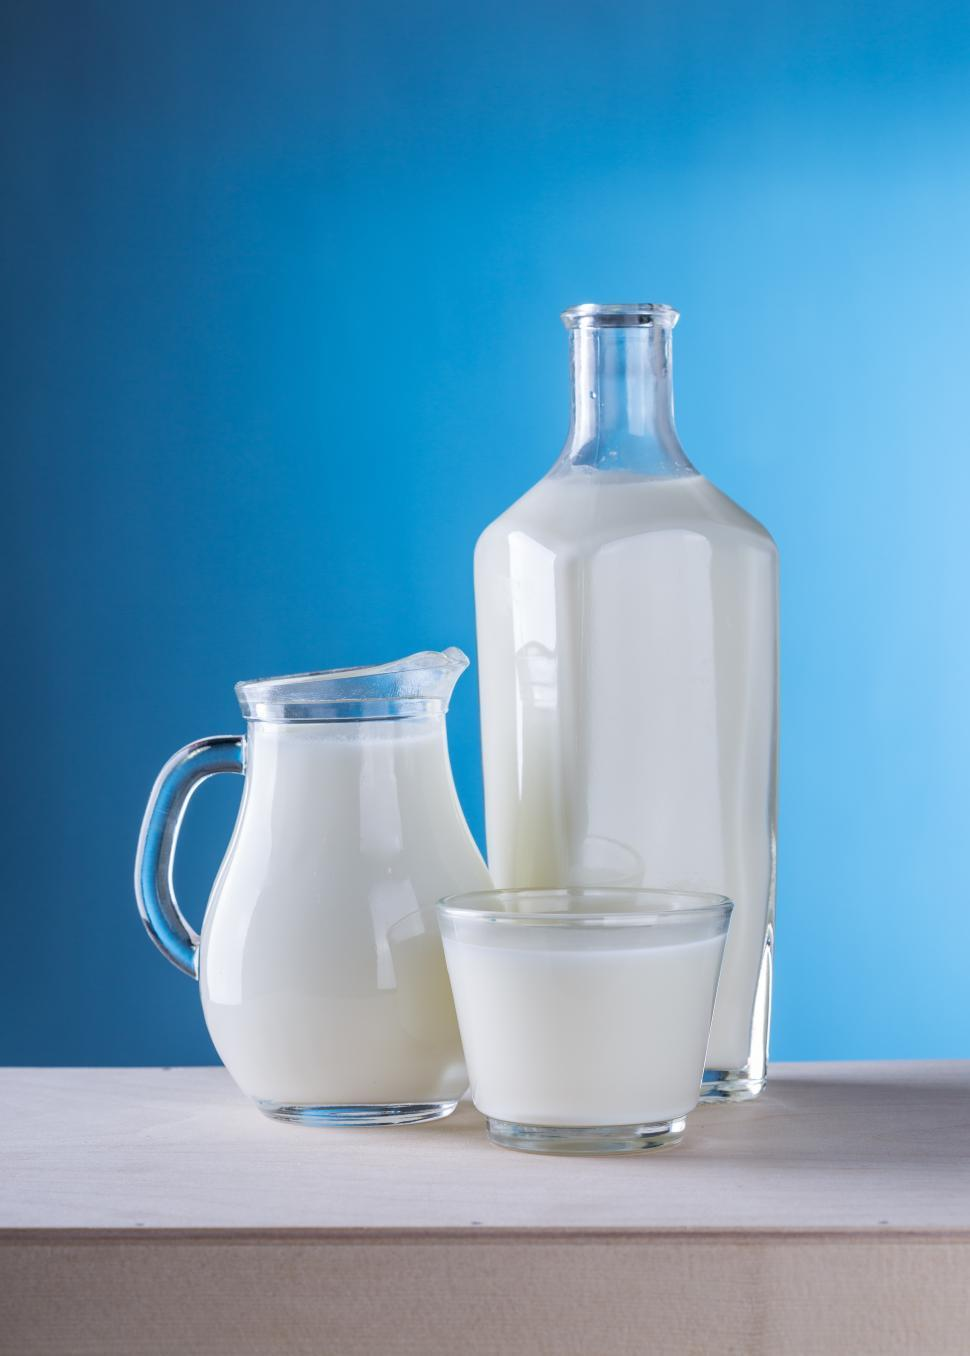 Download Free Stock HD Photo of Close up of a glass, a pitcher and a bottle Online